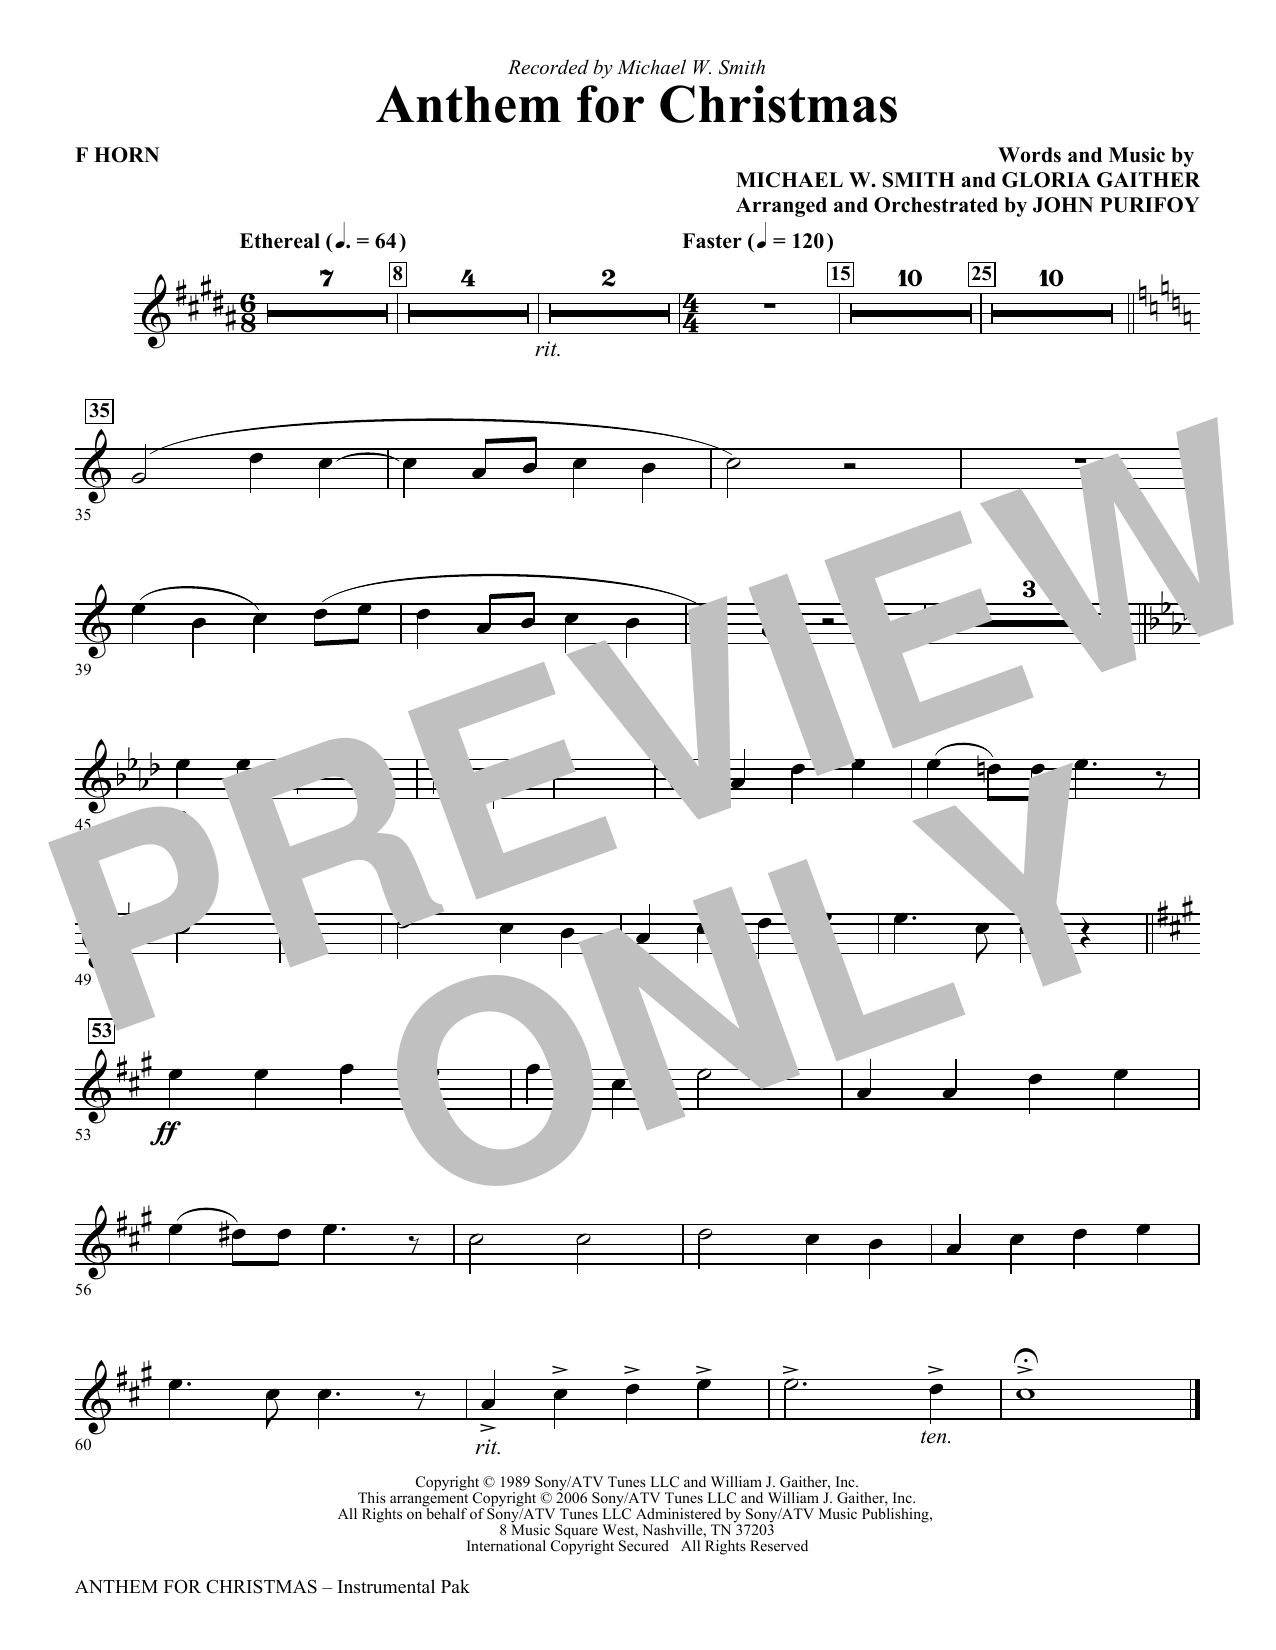 Anthem for Christmas - F Horn Sheet Music